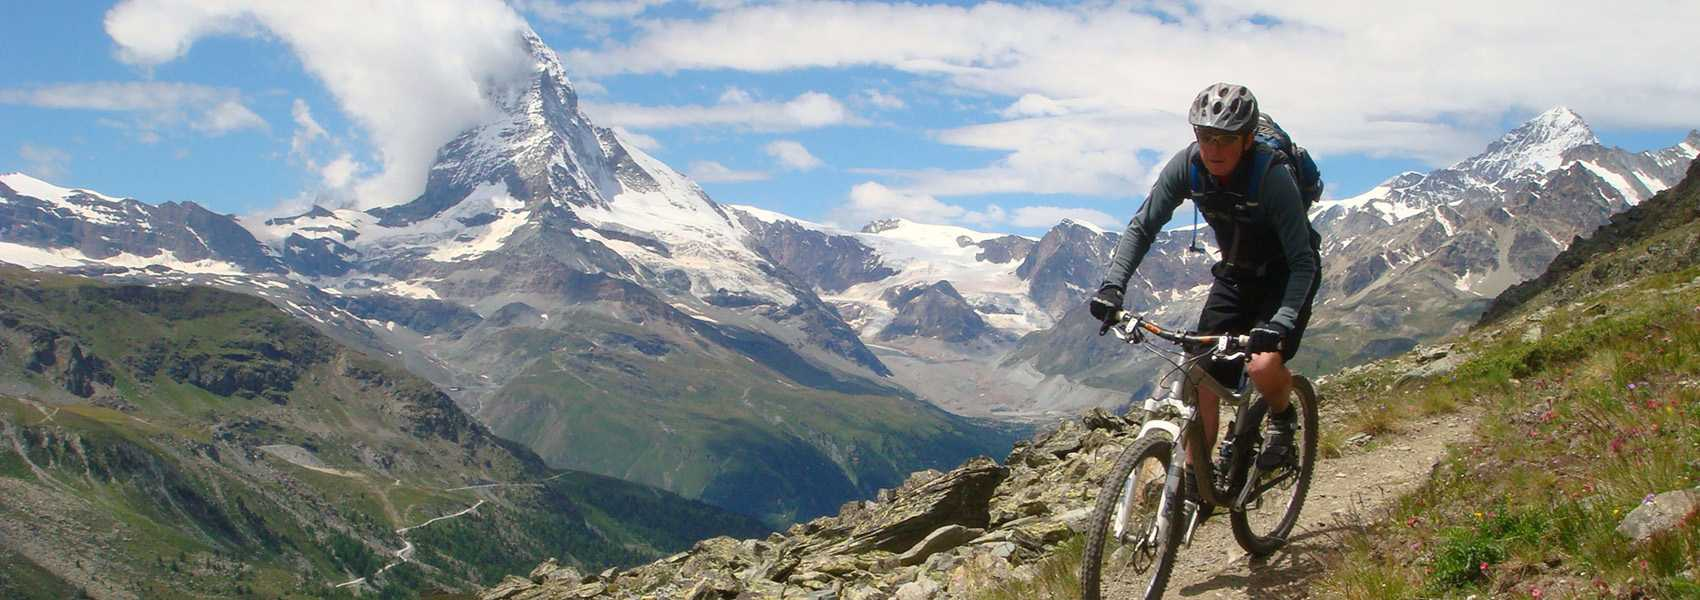 biking-in-the-garwal-himalayas